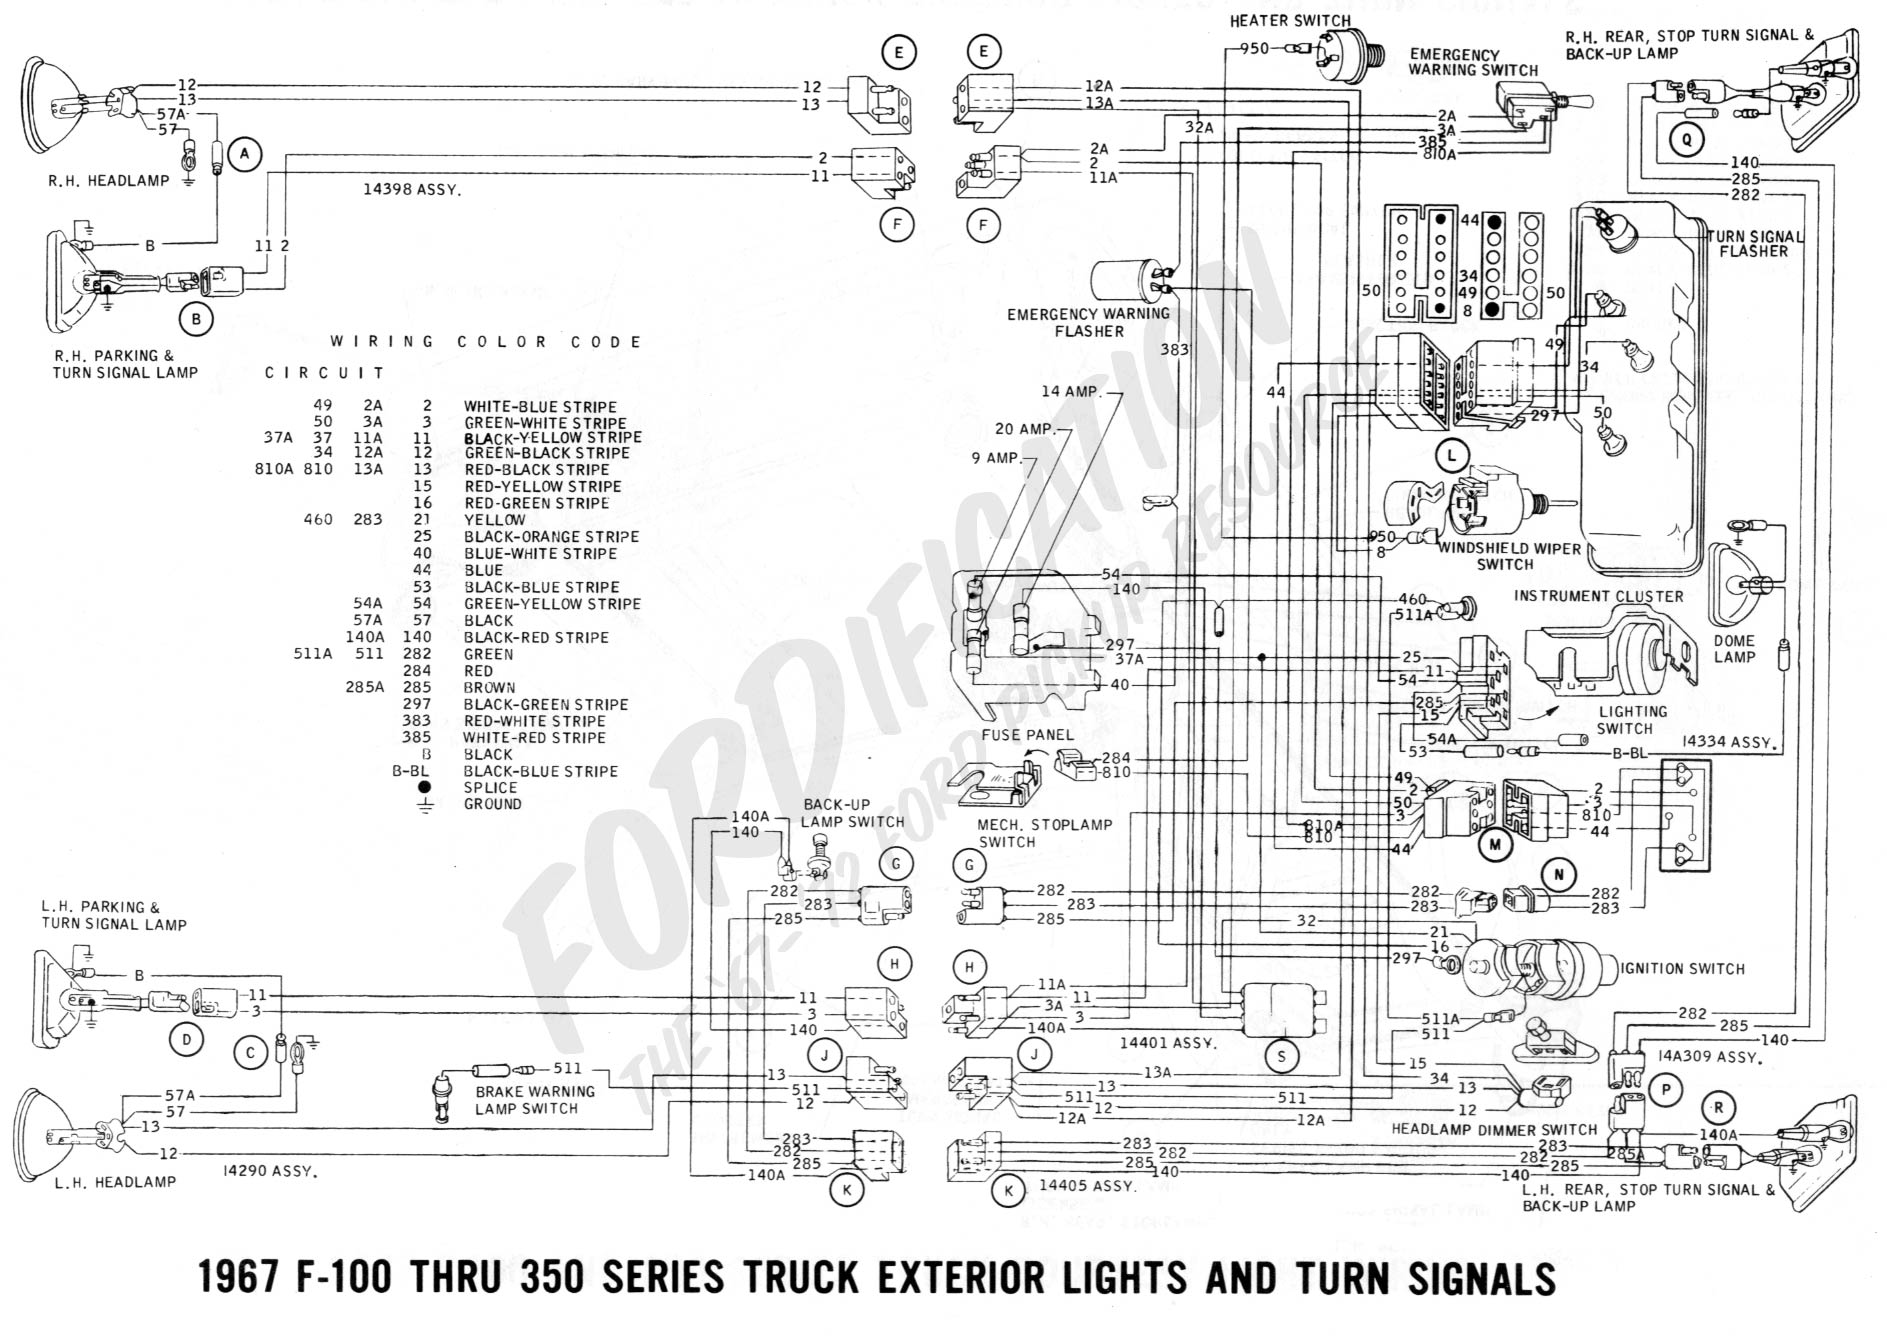 1960 Ford Truck Wiring Diagrams Diagram Online 66 Thunderbird F100 Alternator For 1983 Scematic 1966